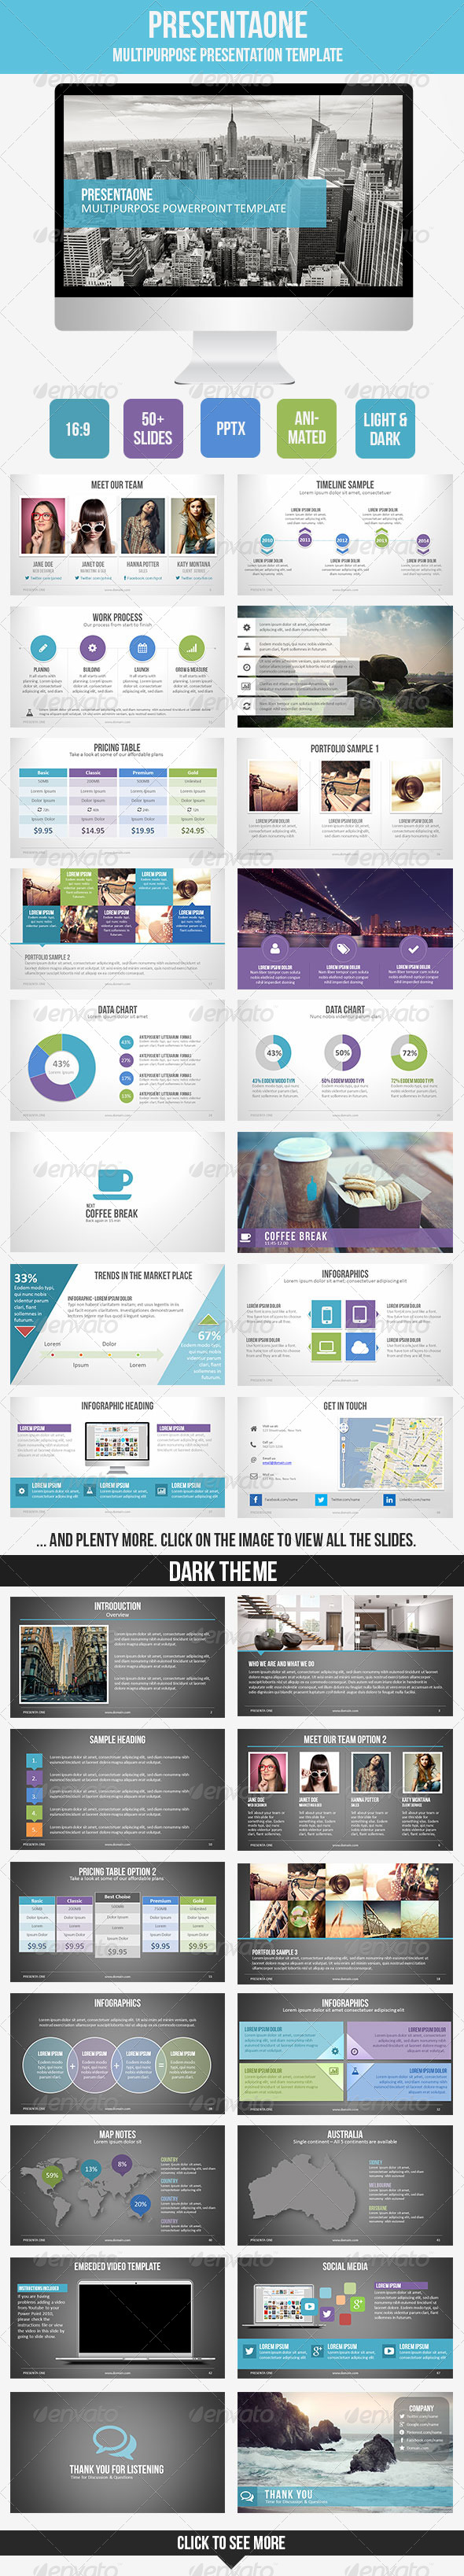 presentaone powerpoint template